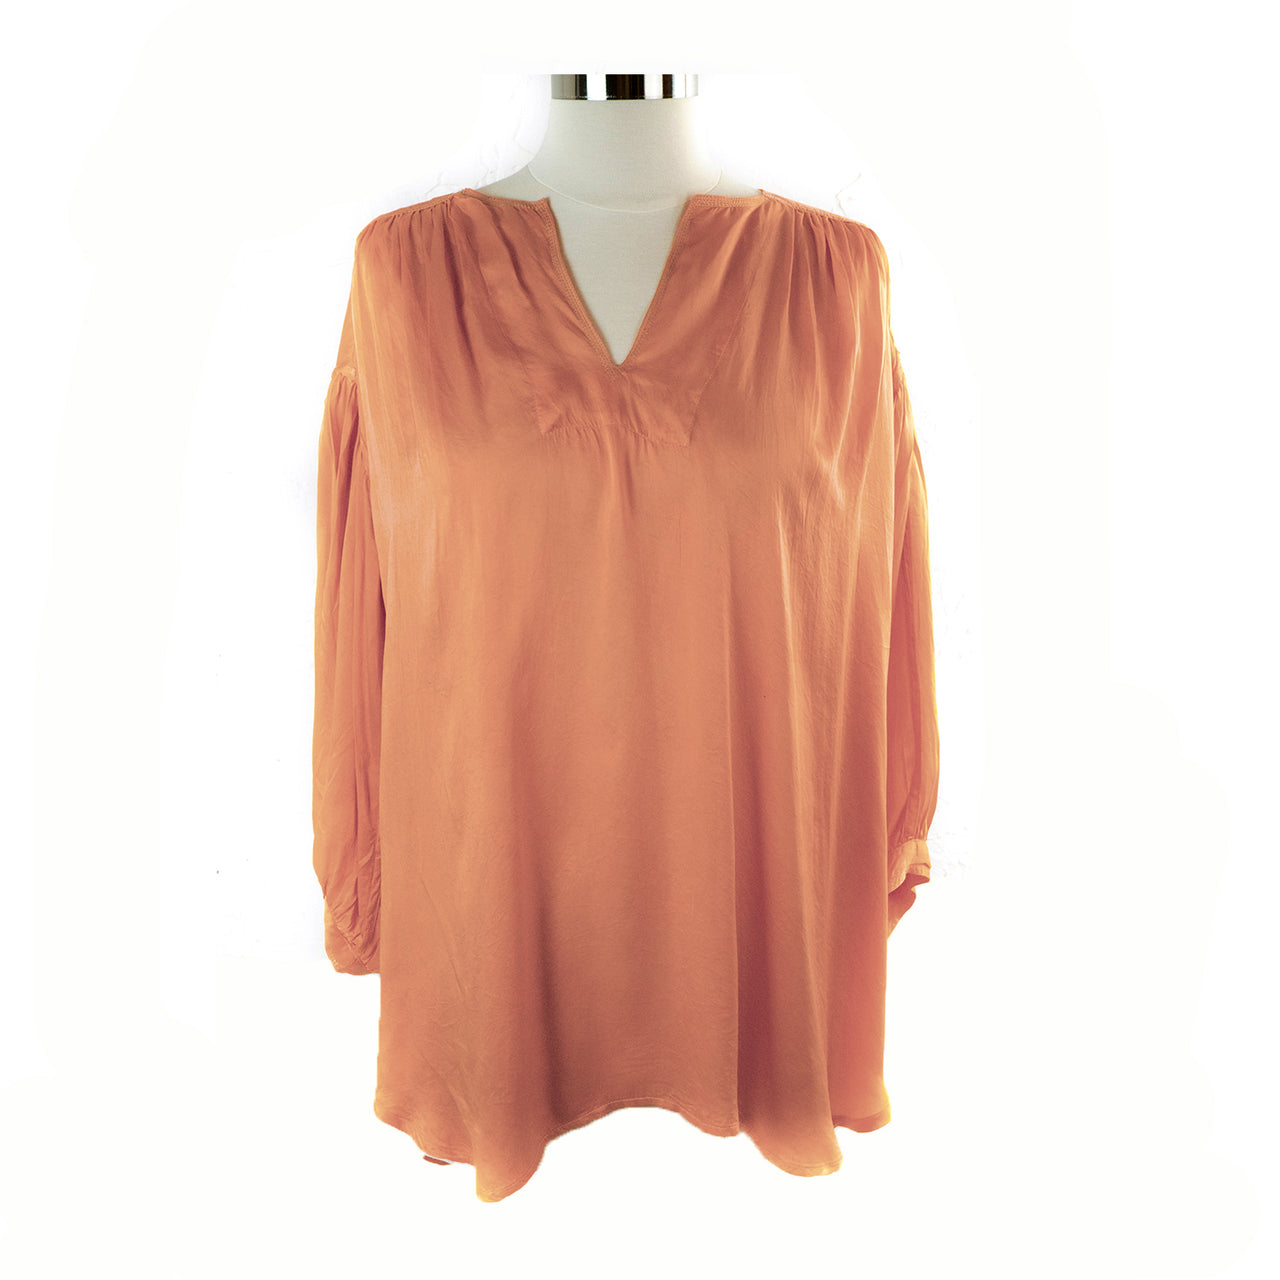 Manissa Silk Top – Peach